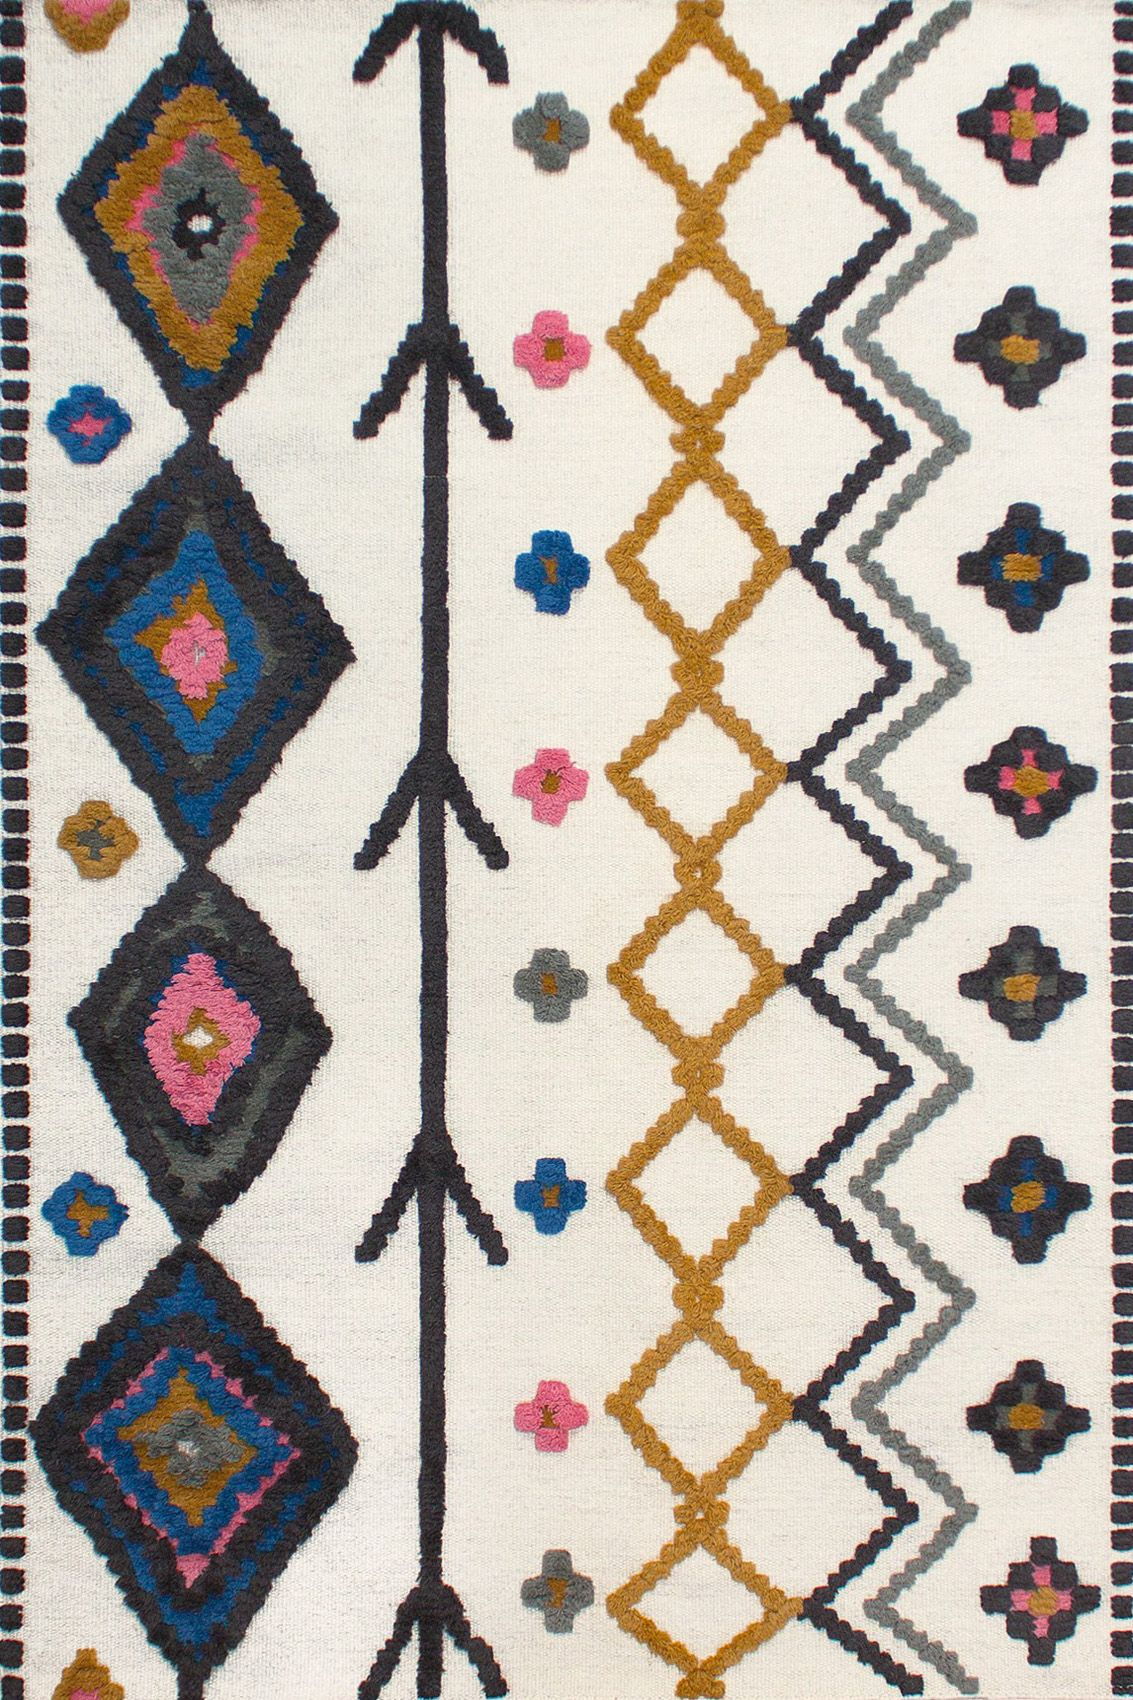 GIPSY design 'Collection Y' by Serge LESAGE An ethnic spirit and for a Bohemian lifestyle !